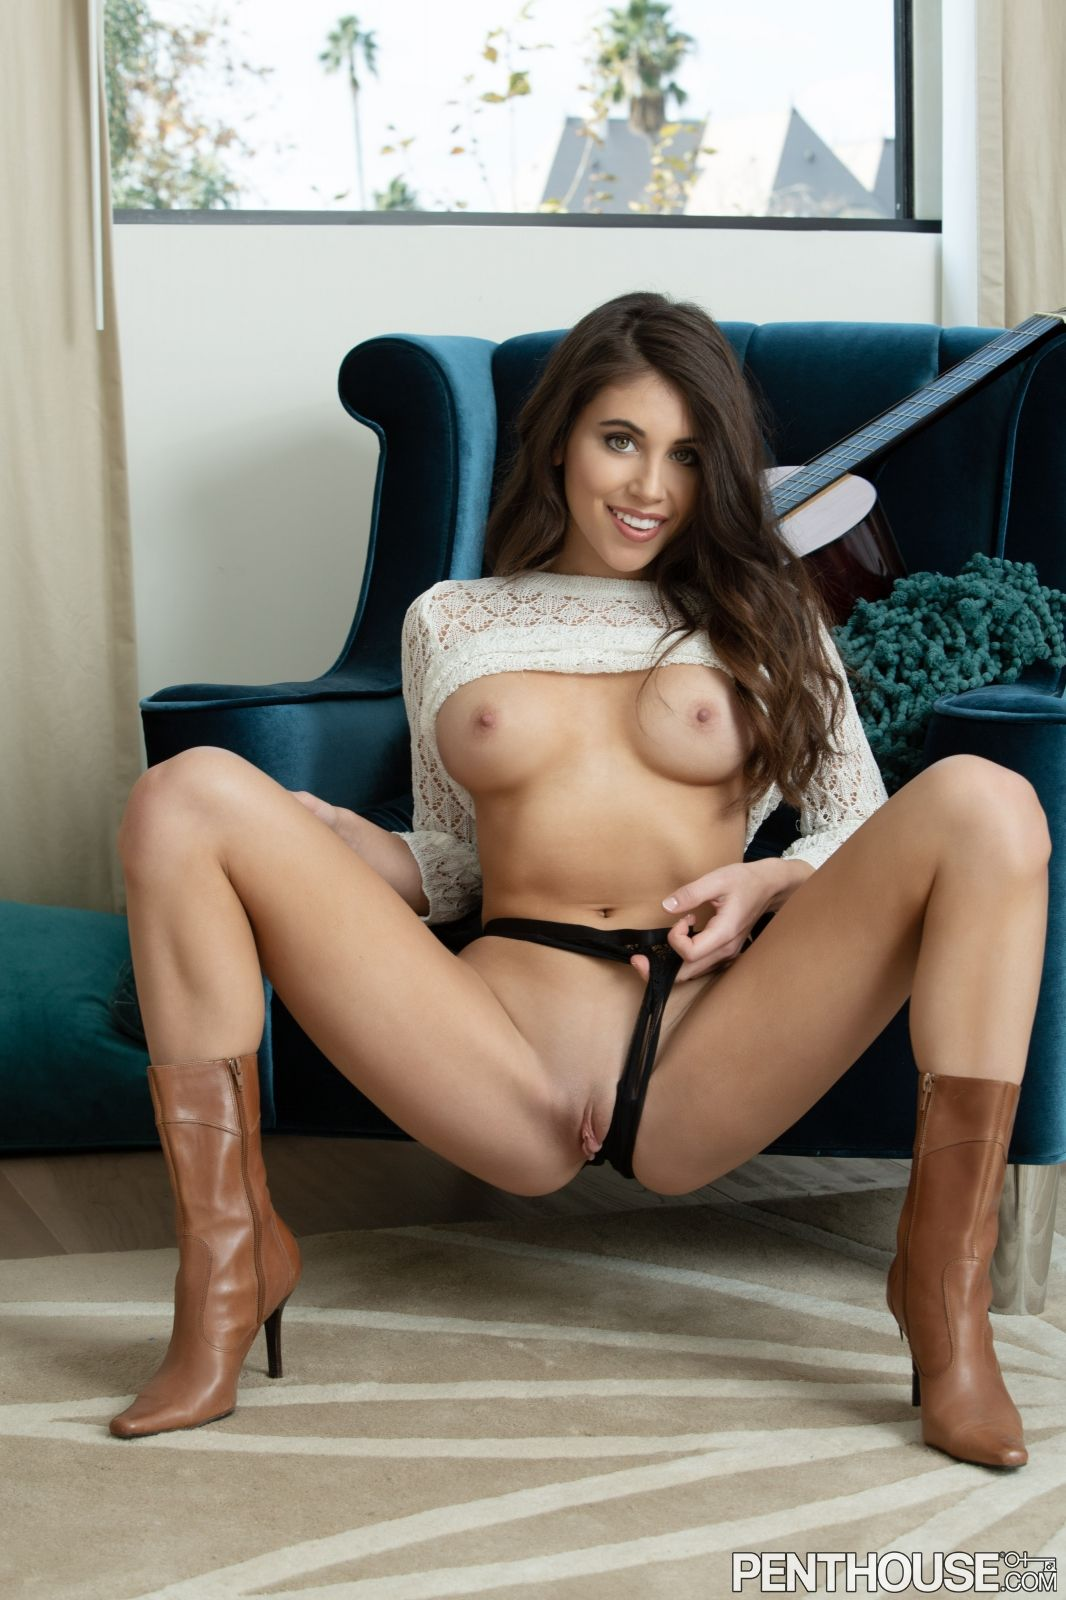 Violet Summers Nude Leaked Photos 0018